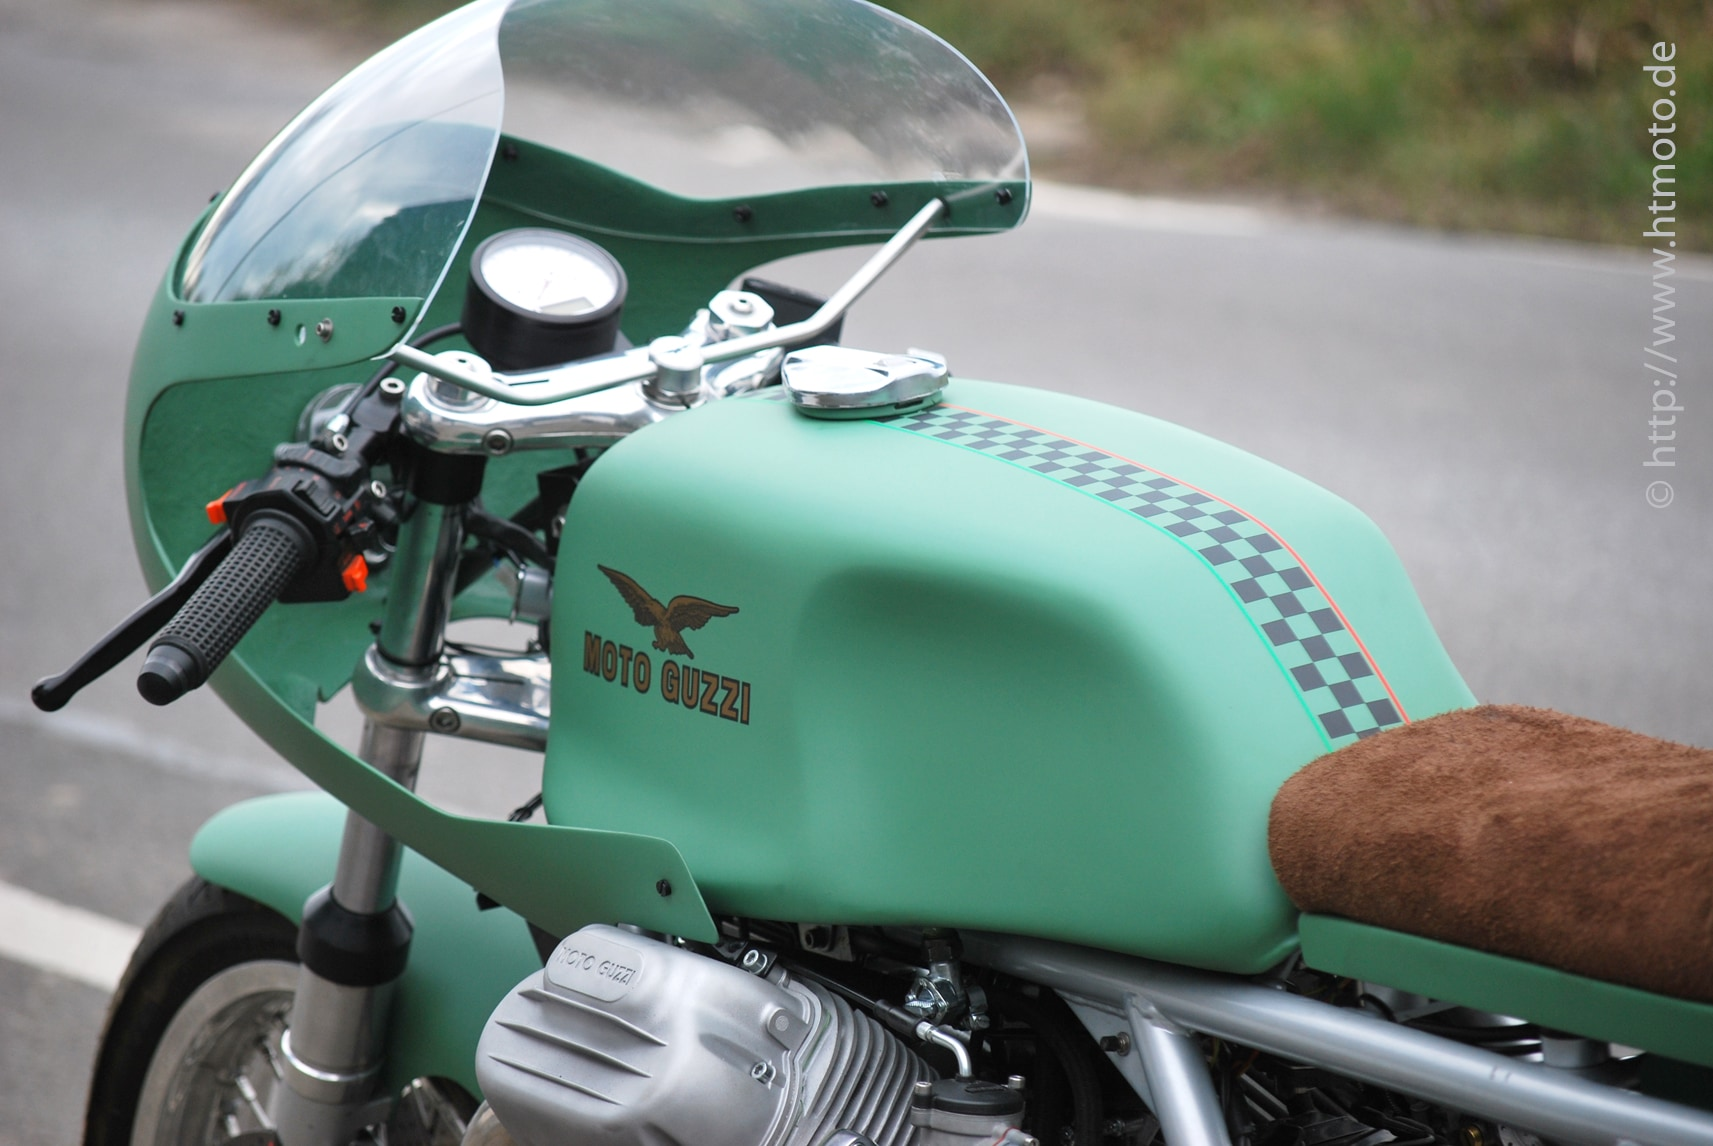 Moto Guzzi with BL 2000 indicators